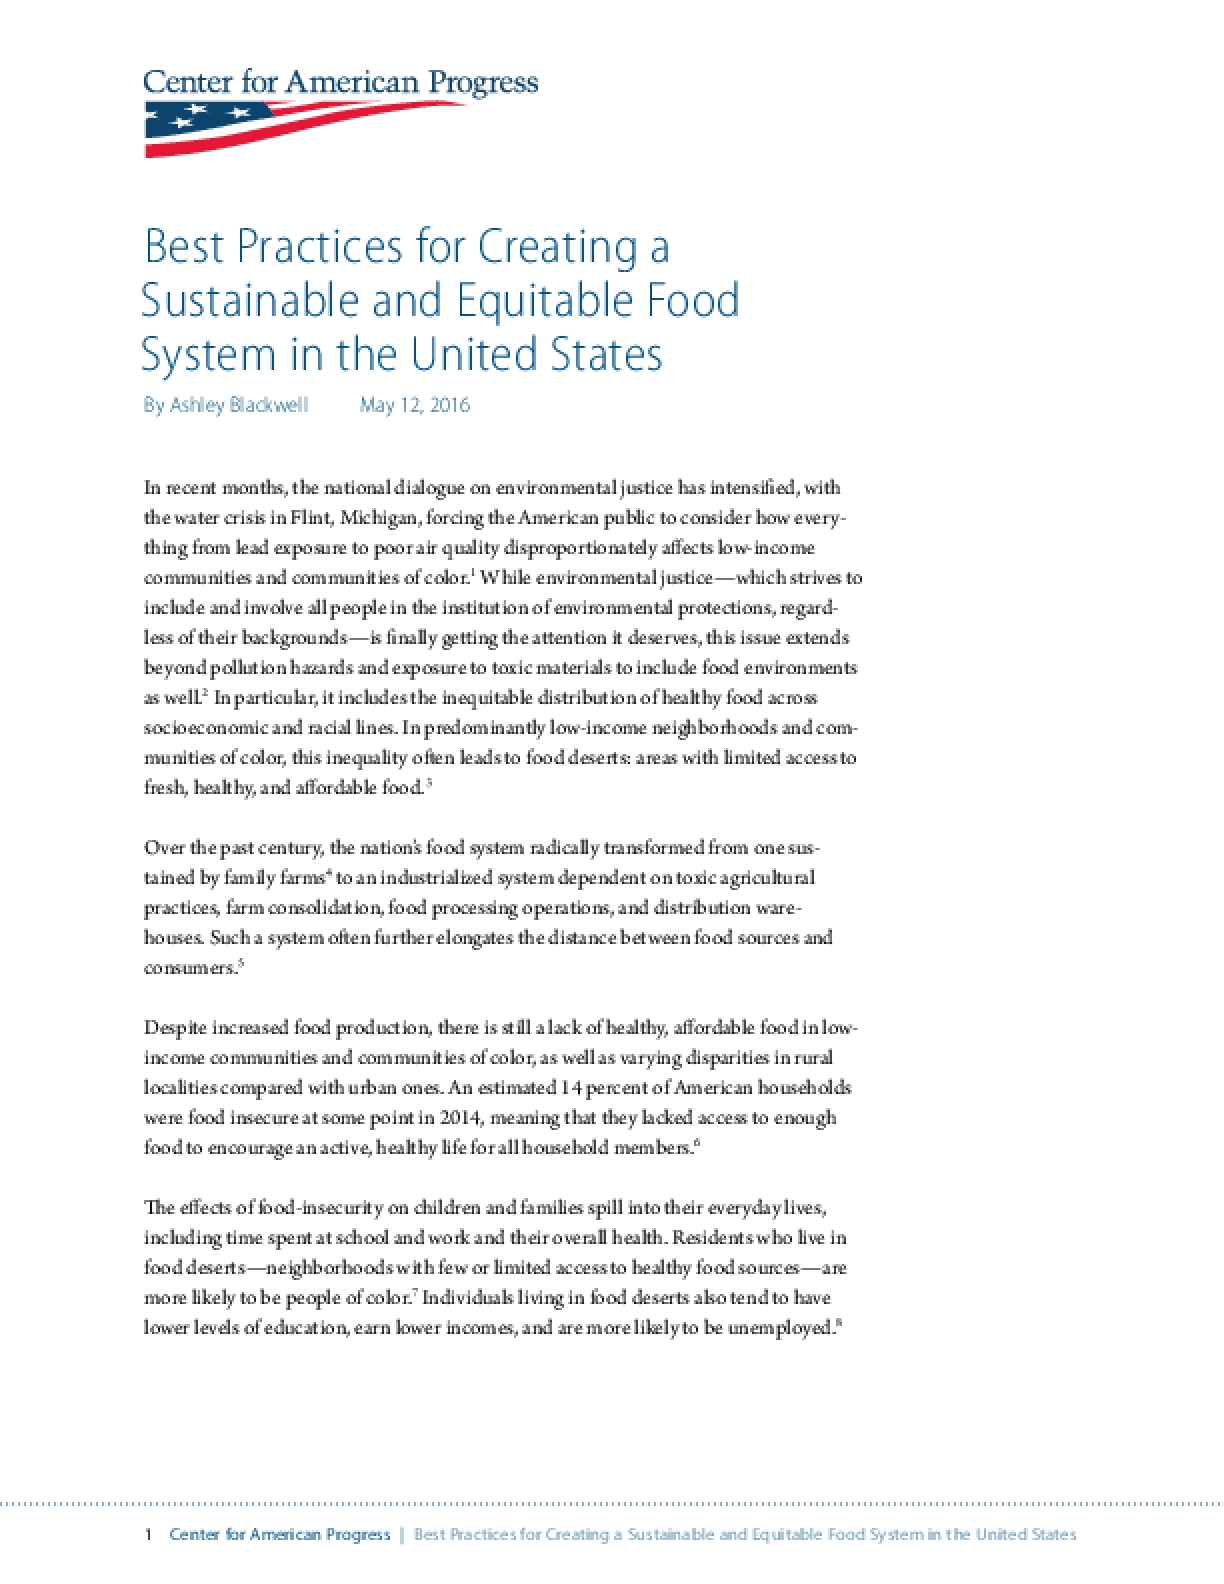 Best Practices for Creating a Sustainable and Equitable Food System in the United States